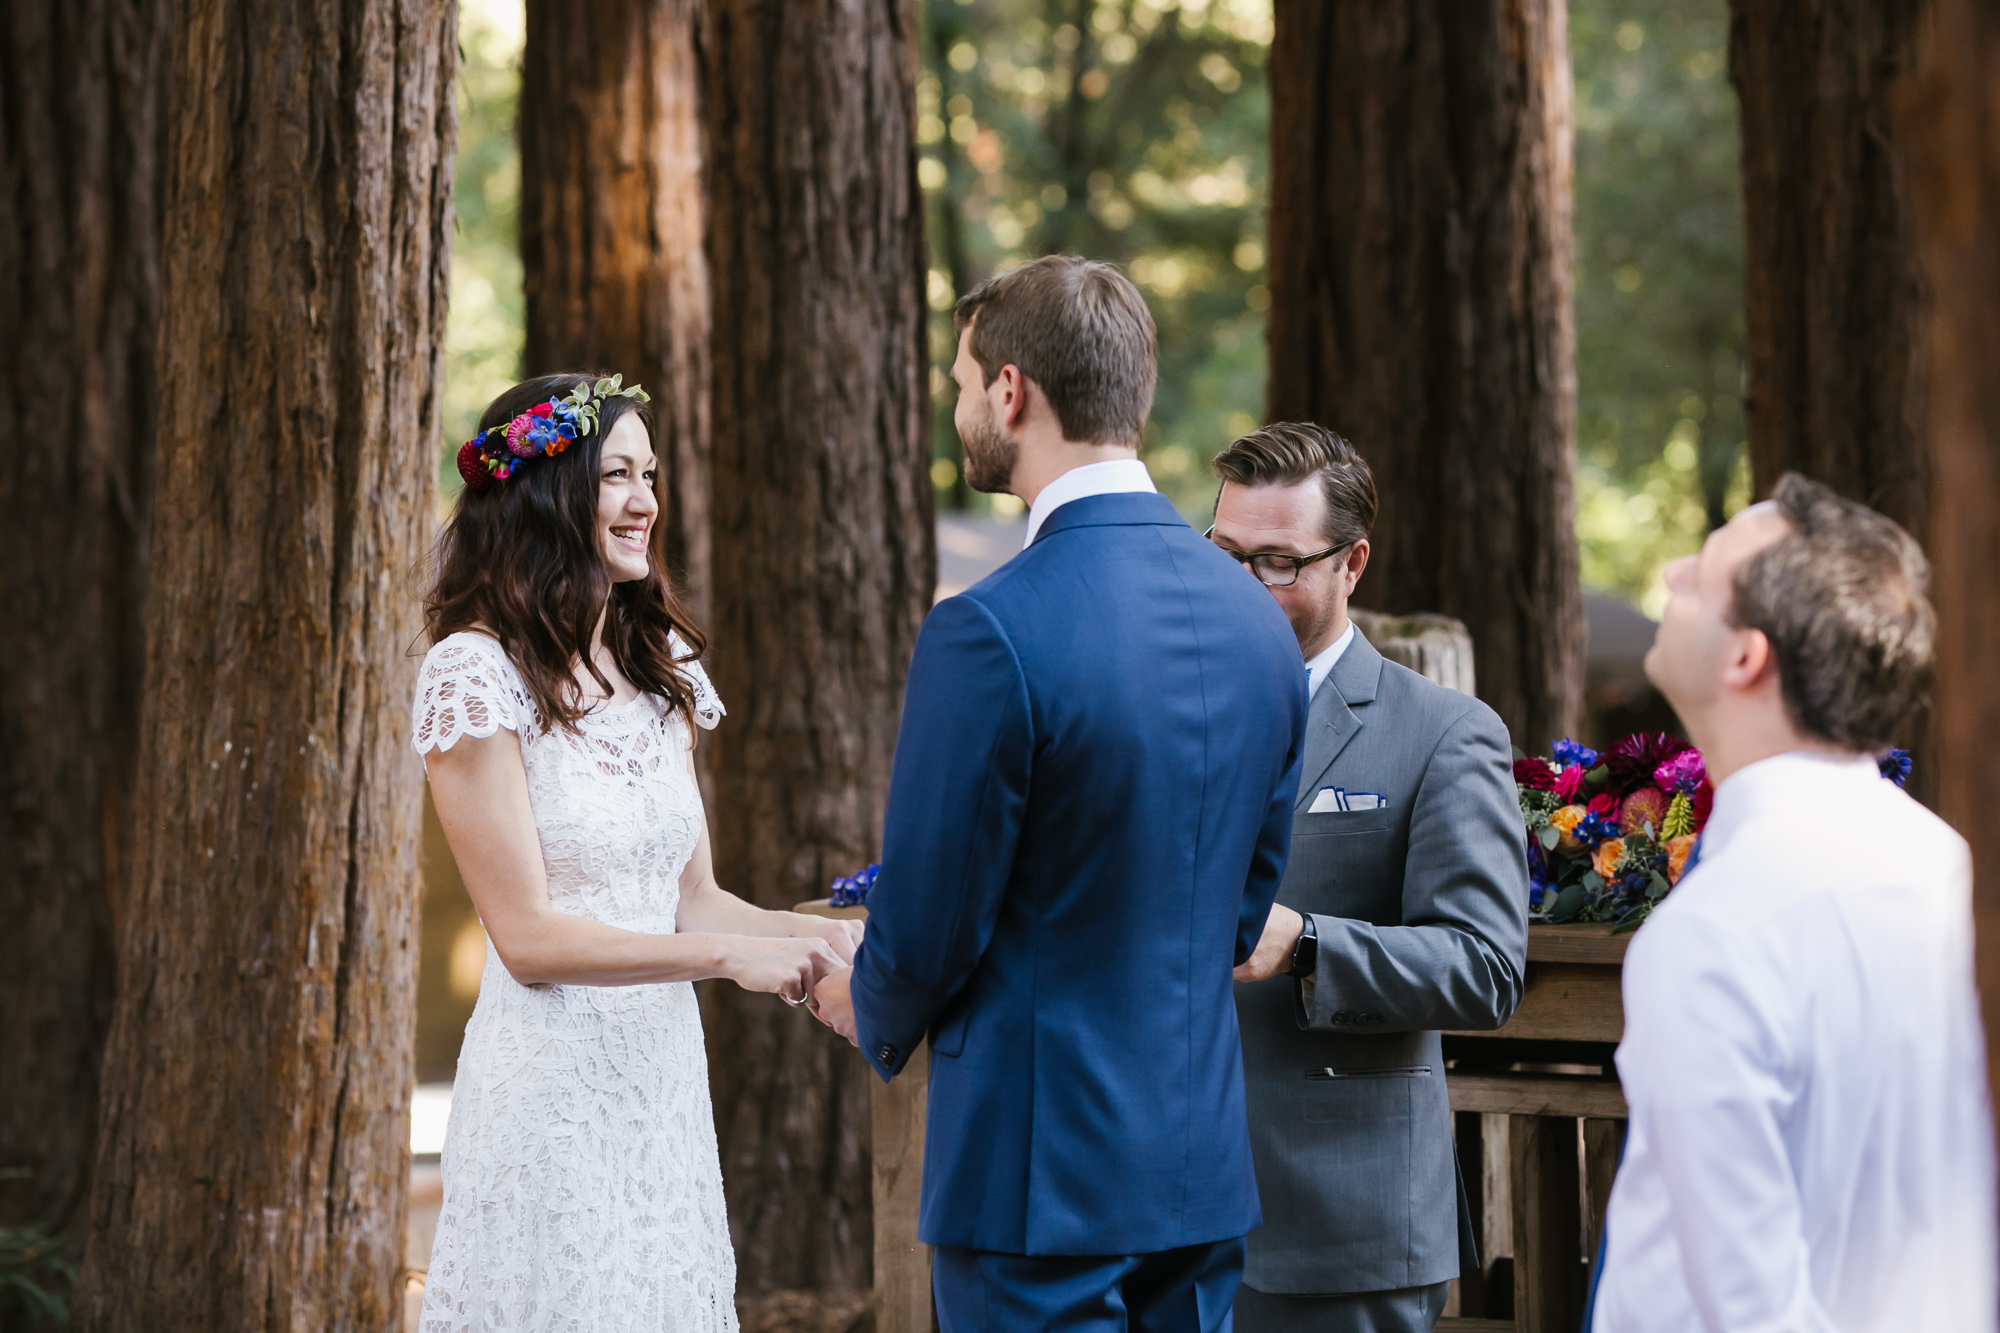 Bride with flower crown smiles at her soon to be husband during their wedding ceremony